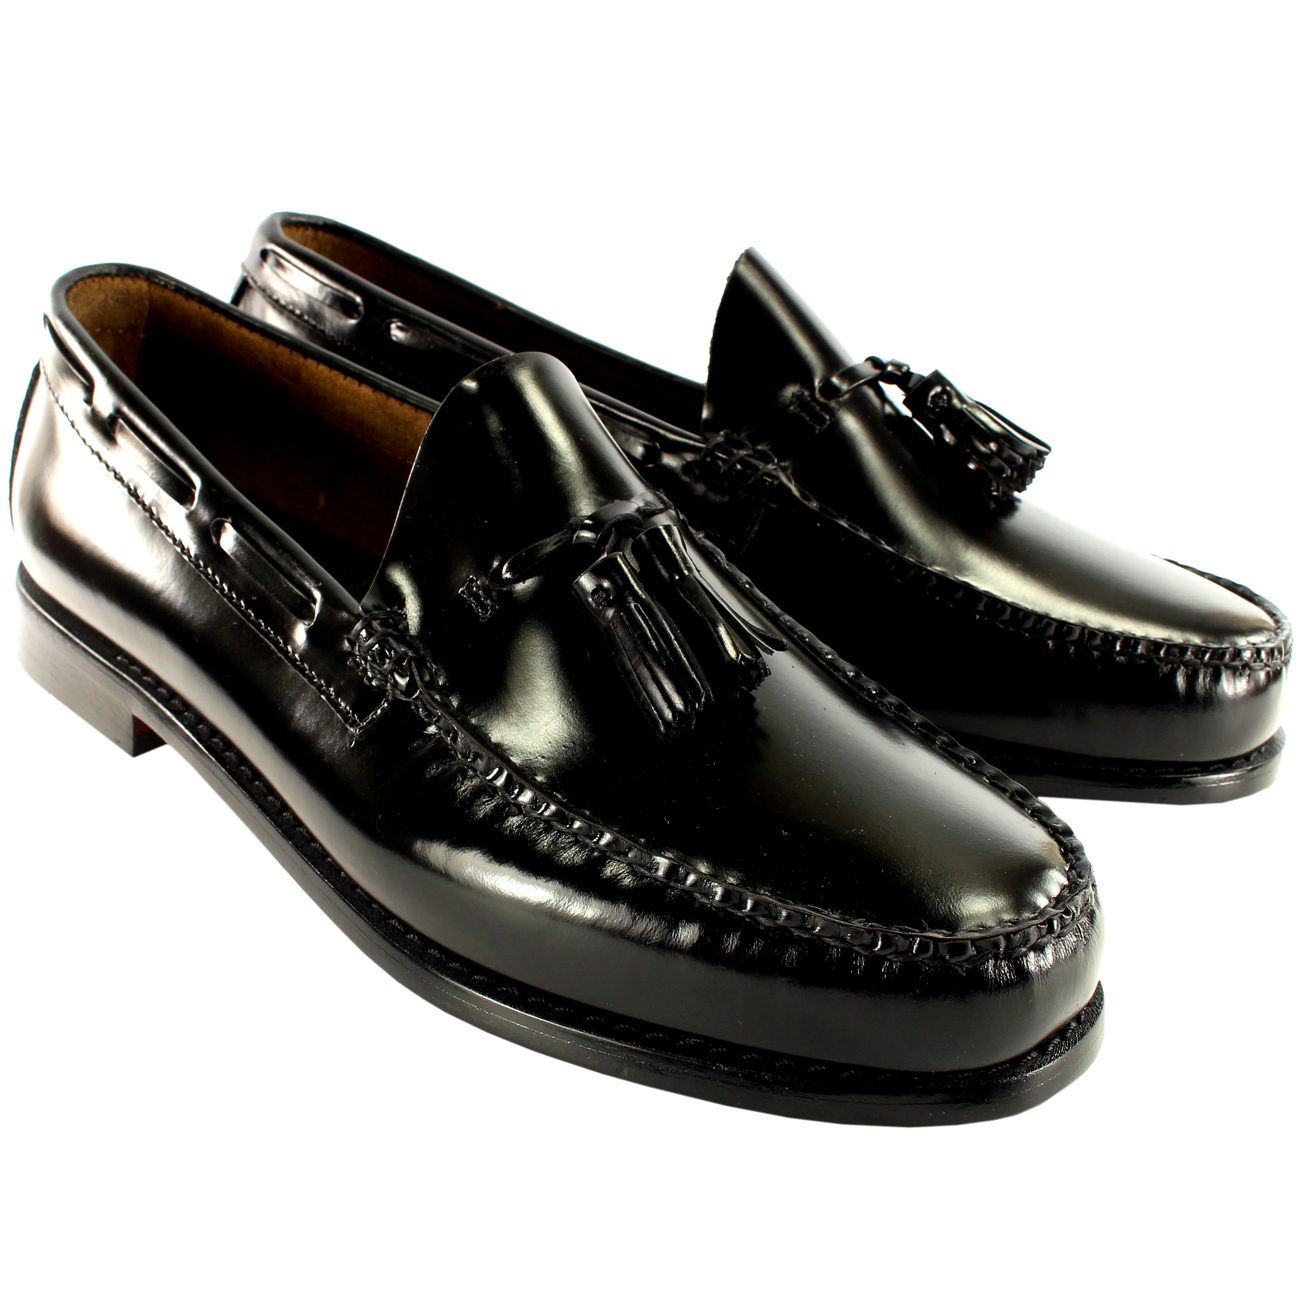 G.H. Bass Larkin Smart Shoes